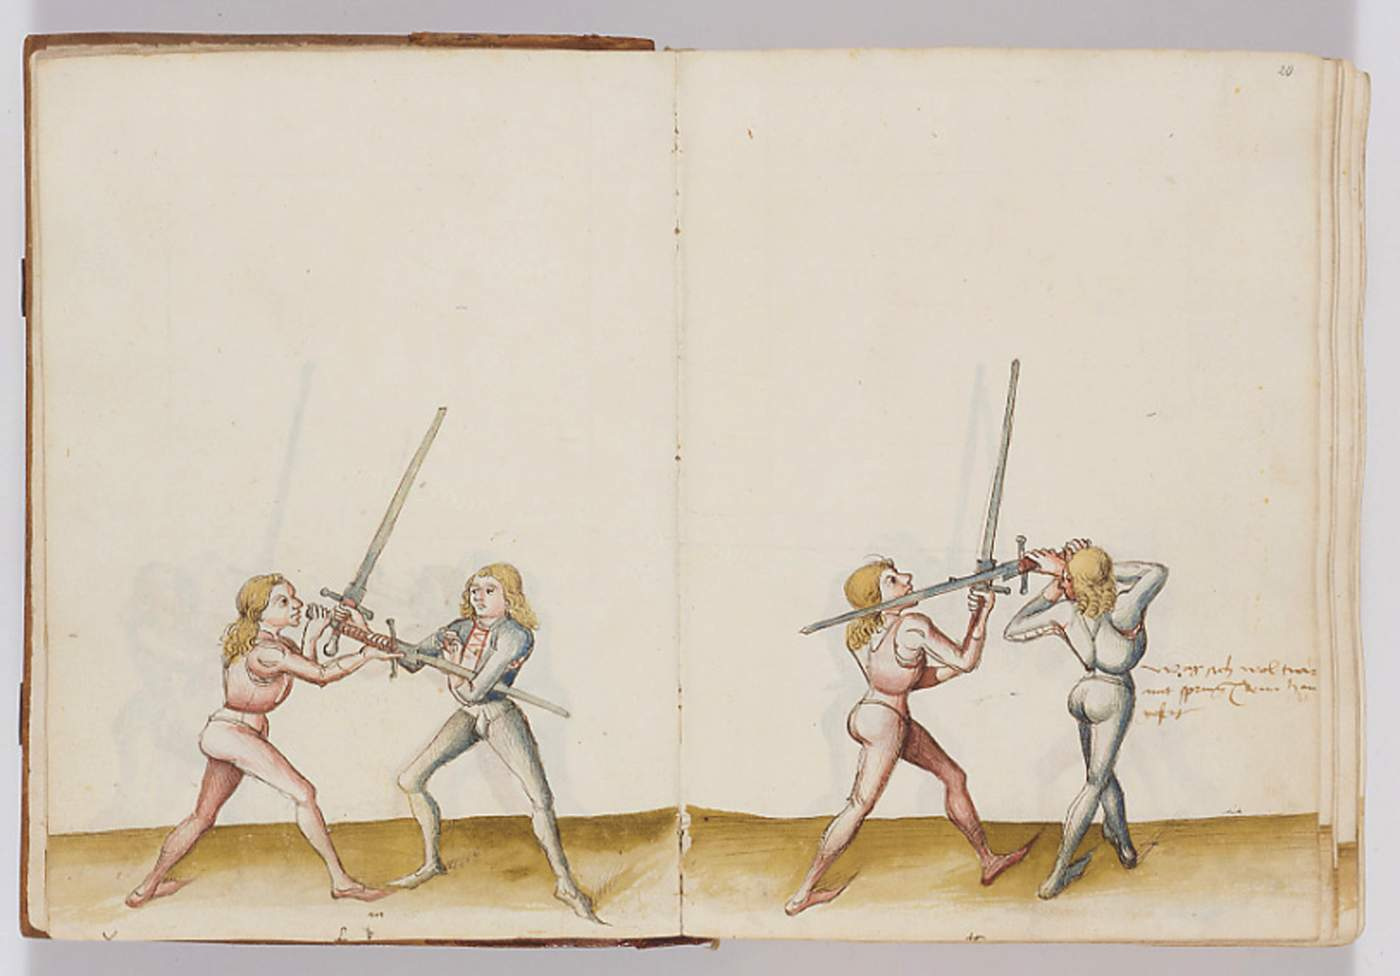 Fencing treatise